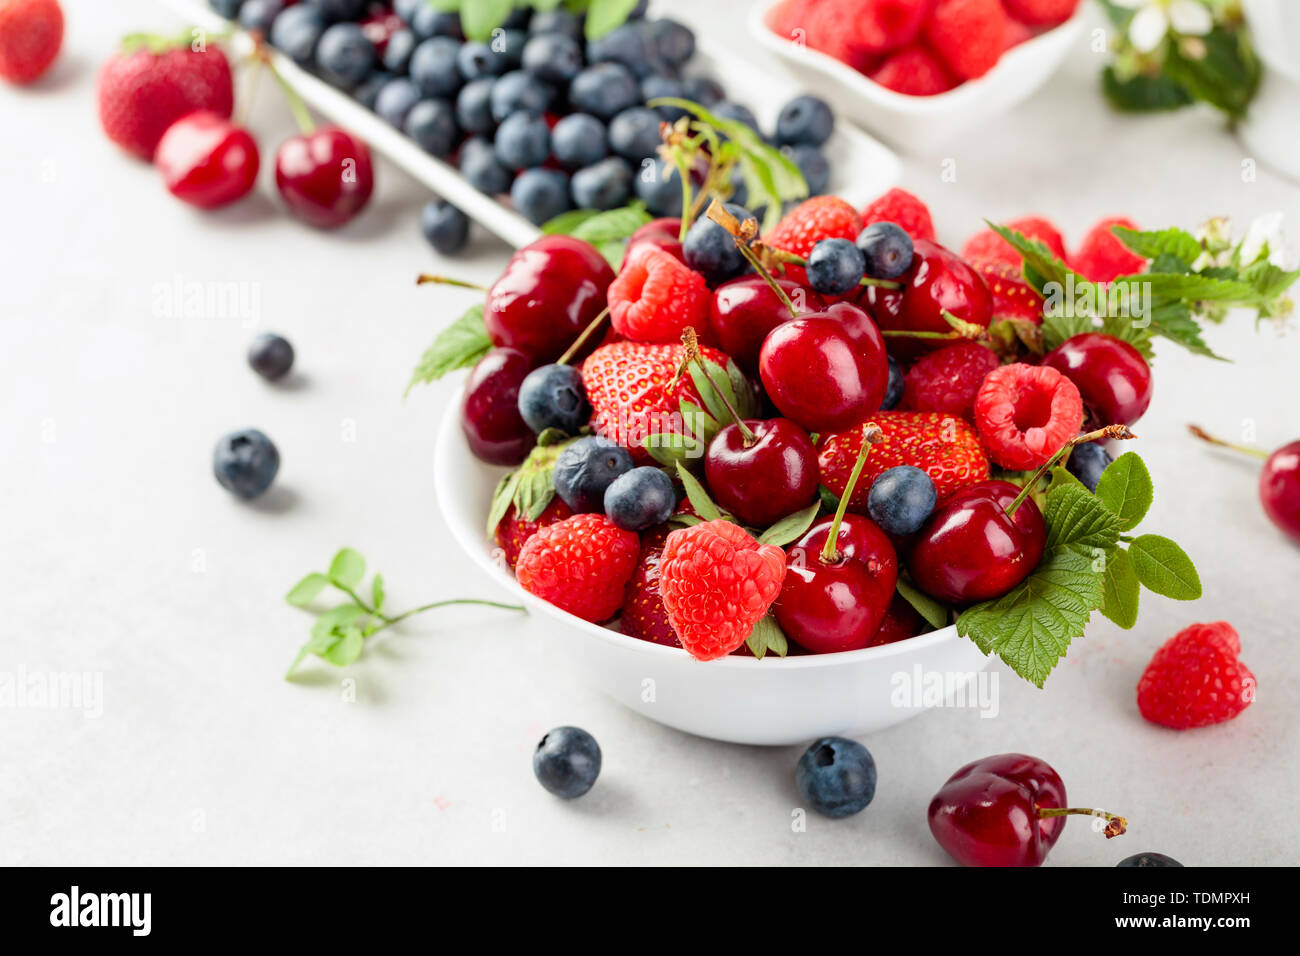 Berries closeup colorful assorted mix of strawberry, blueberry, raspberry and sweet cherry on a white table. Various juicy berries with leaves. - Stock Image